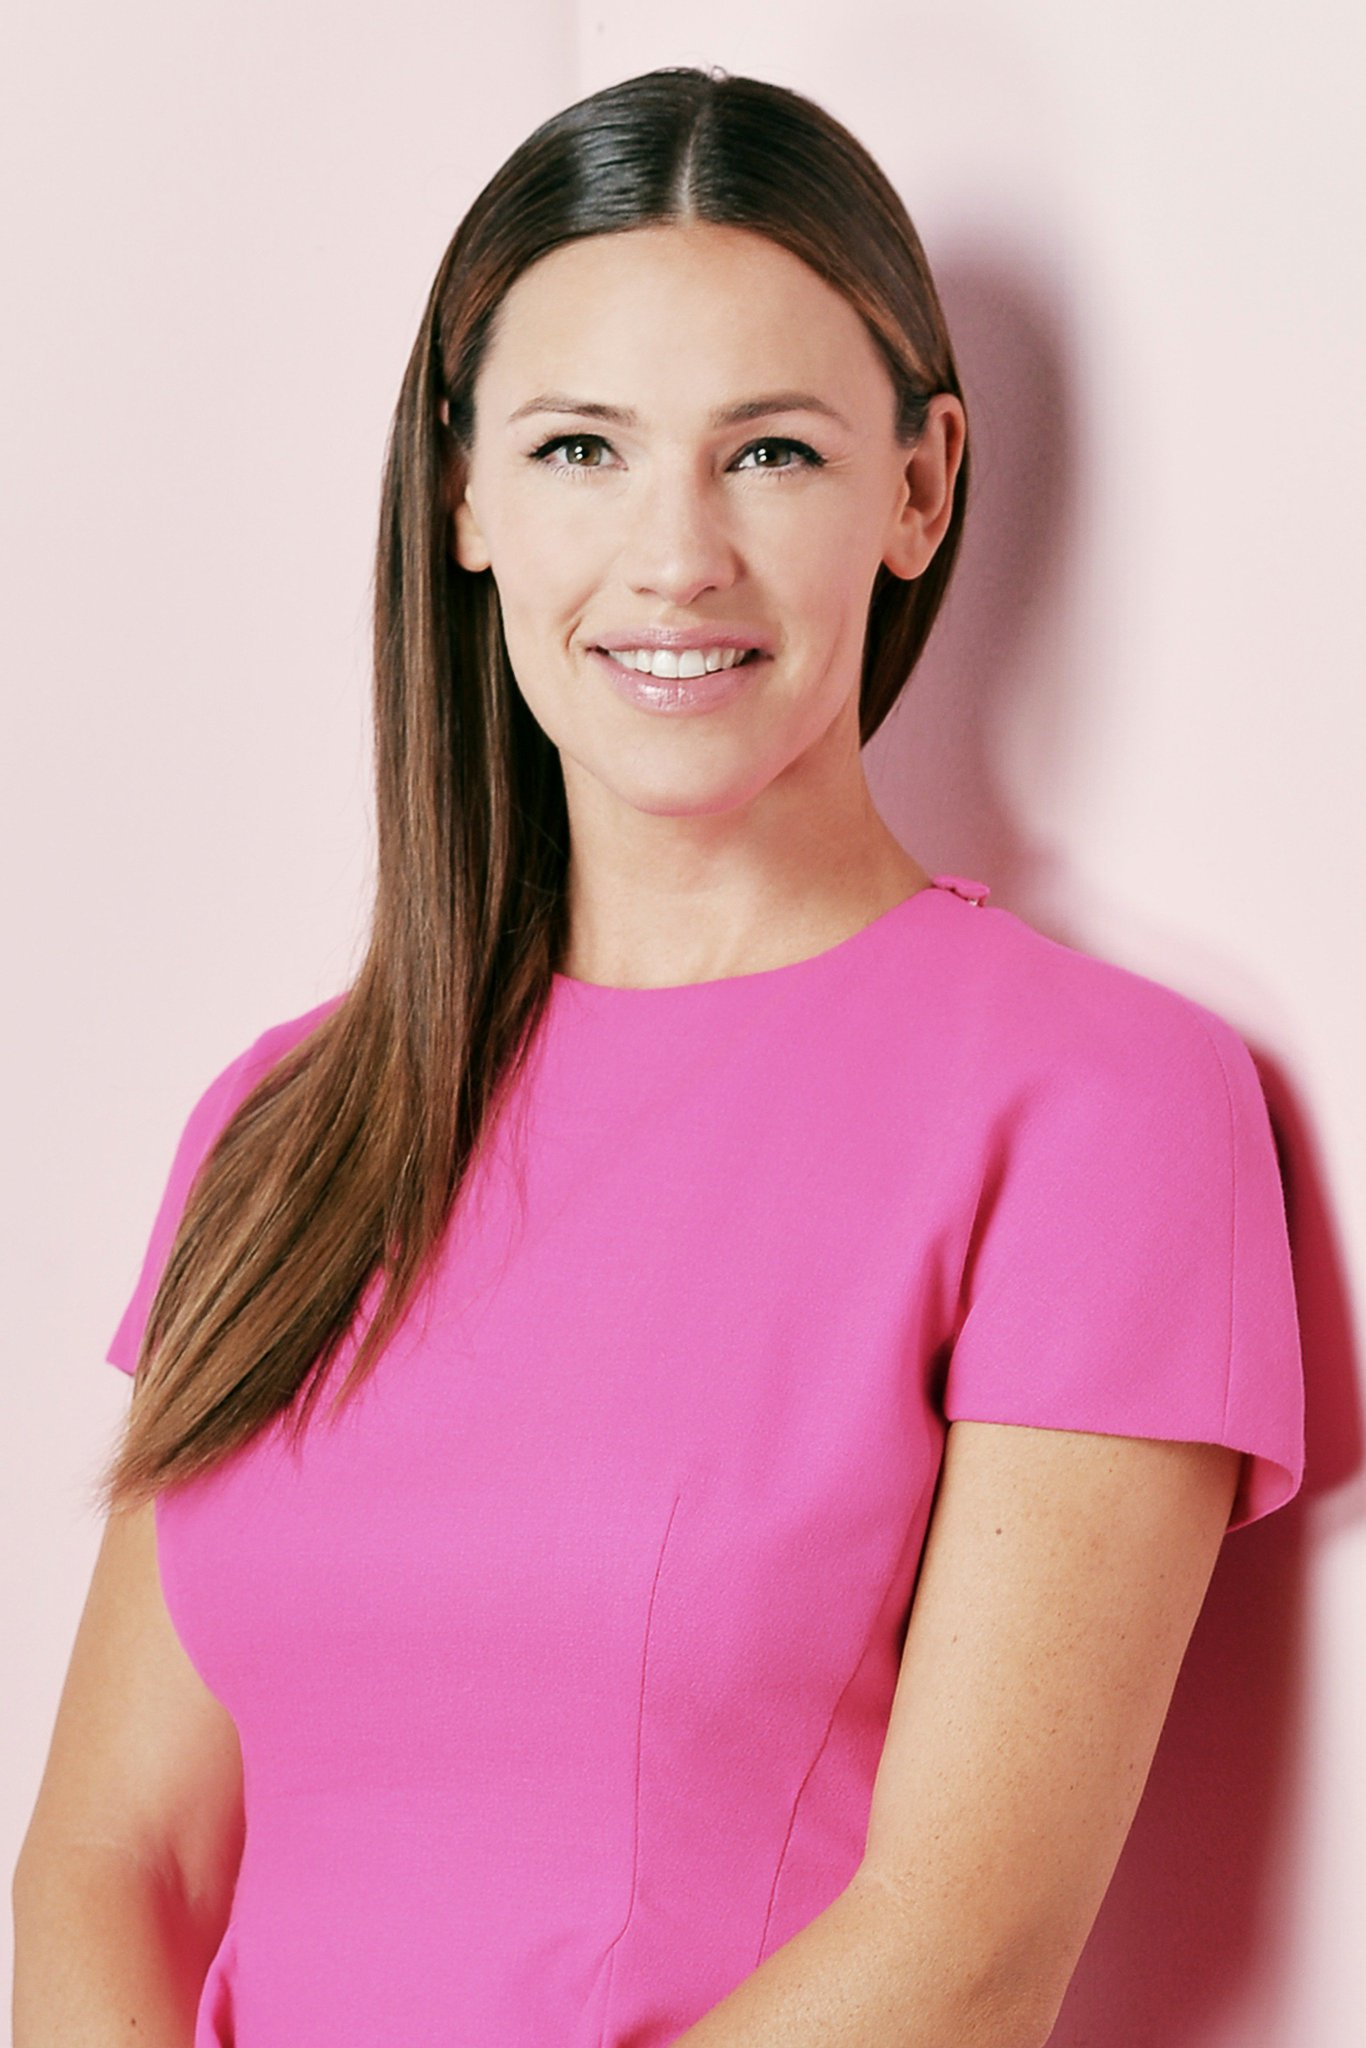 A big Happy Birthday to Jennifer Garner, the actress and mum of three turns 45 today.